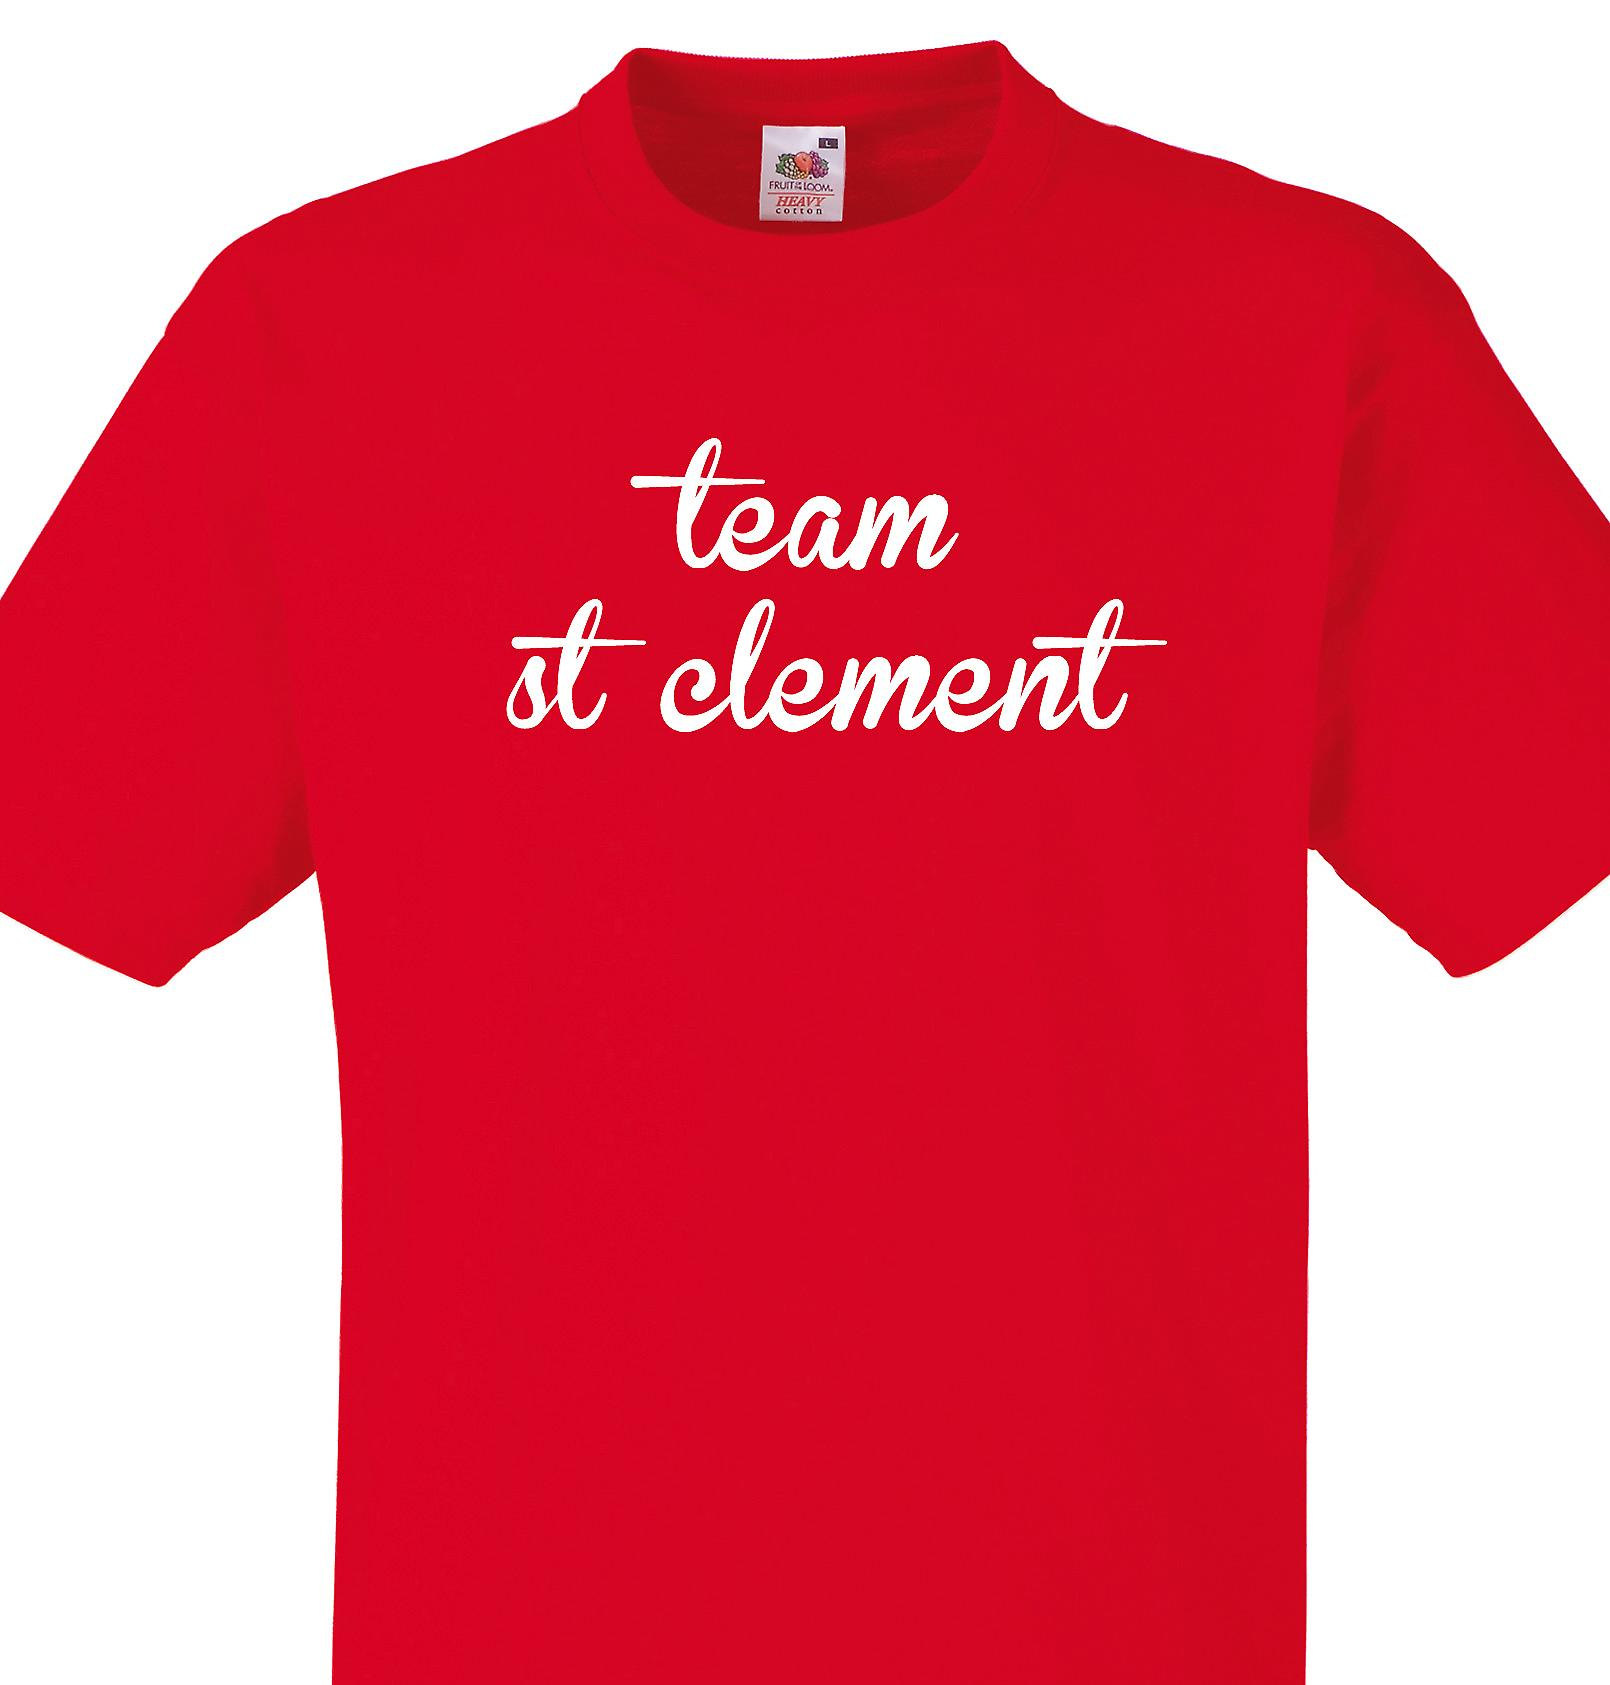 Team St clement Red T shirt